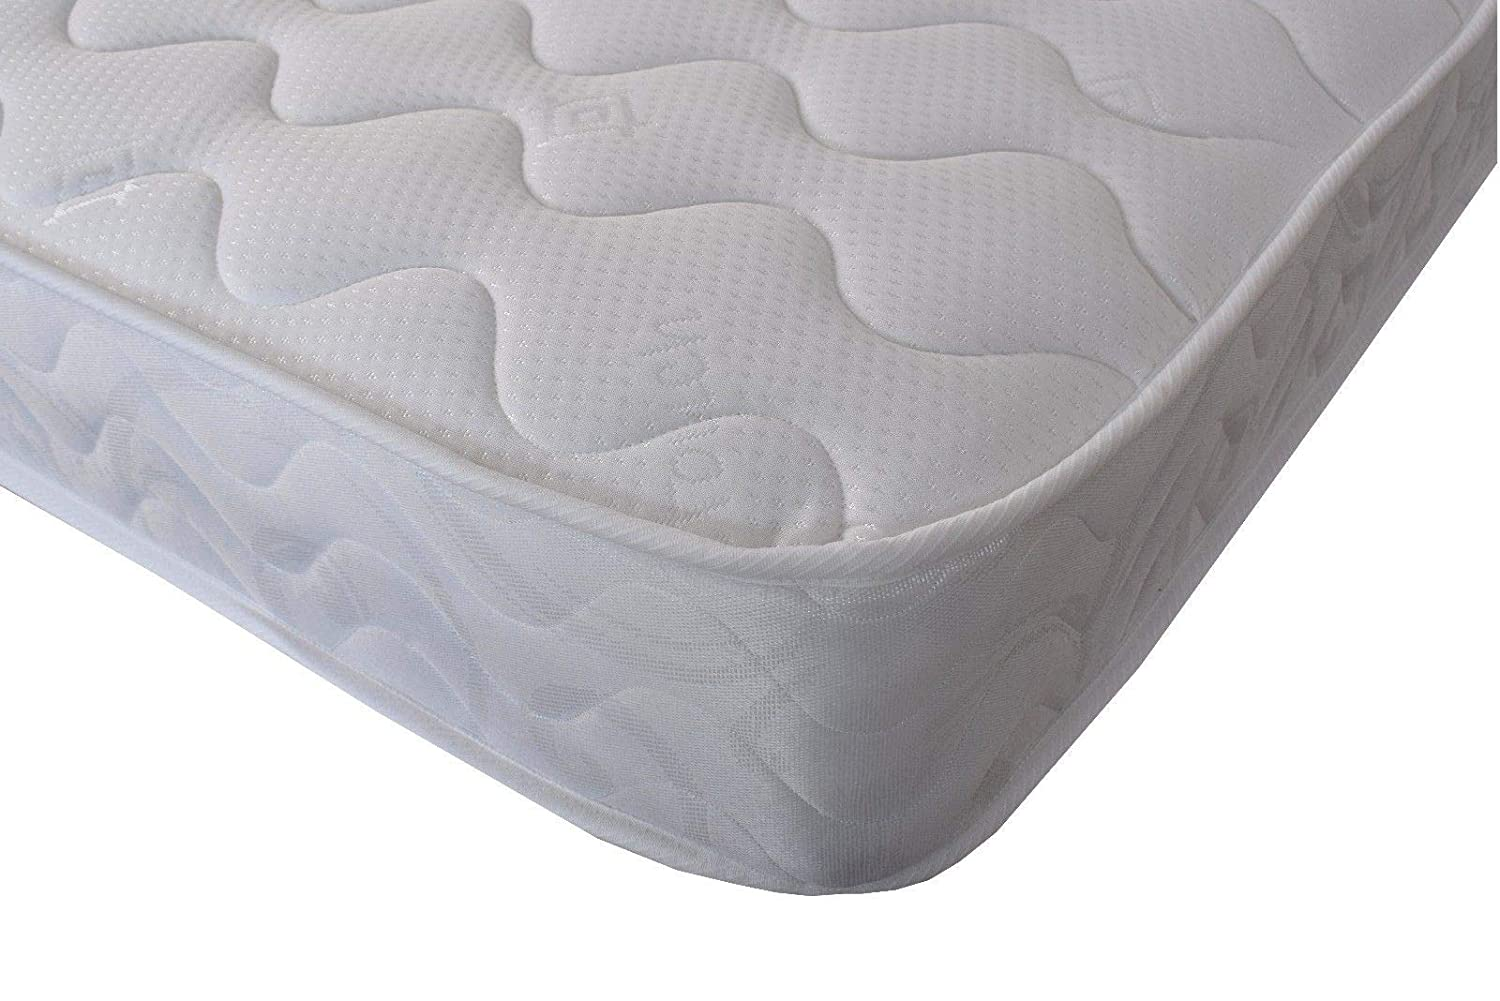 4ft6 x 6ft3 Double Mattress Comfort 4ft6 Double Mattress, Double Memory Foam Mattress (4ft6 x 6ft3 Double Mattress)